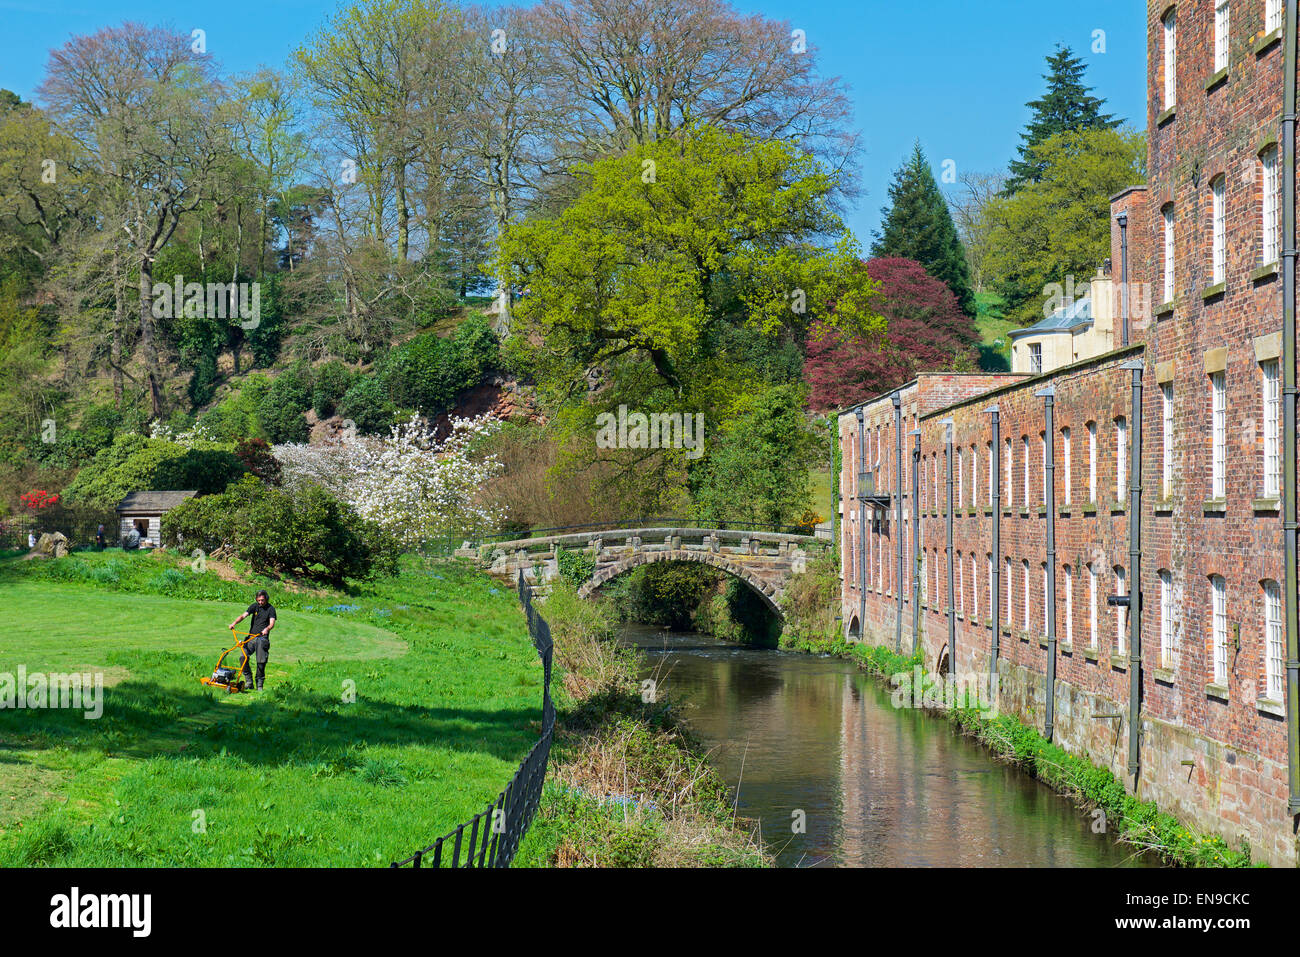 Man mowing grass at Quarry Bank Mill, a National Trust property, Styal, Cheshire, England UK - Stock Image